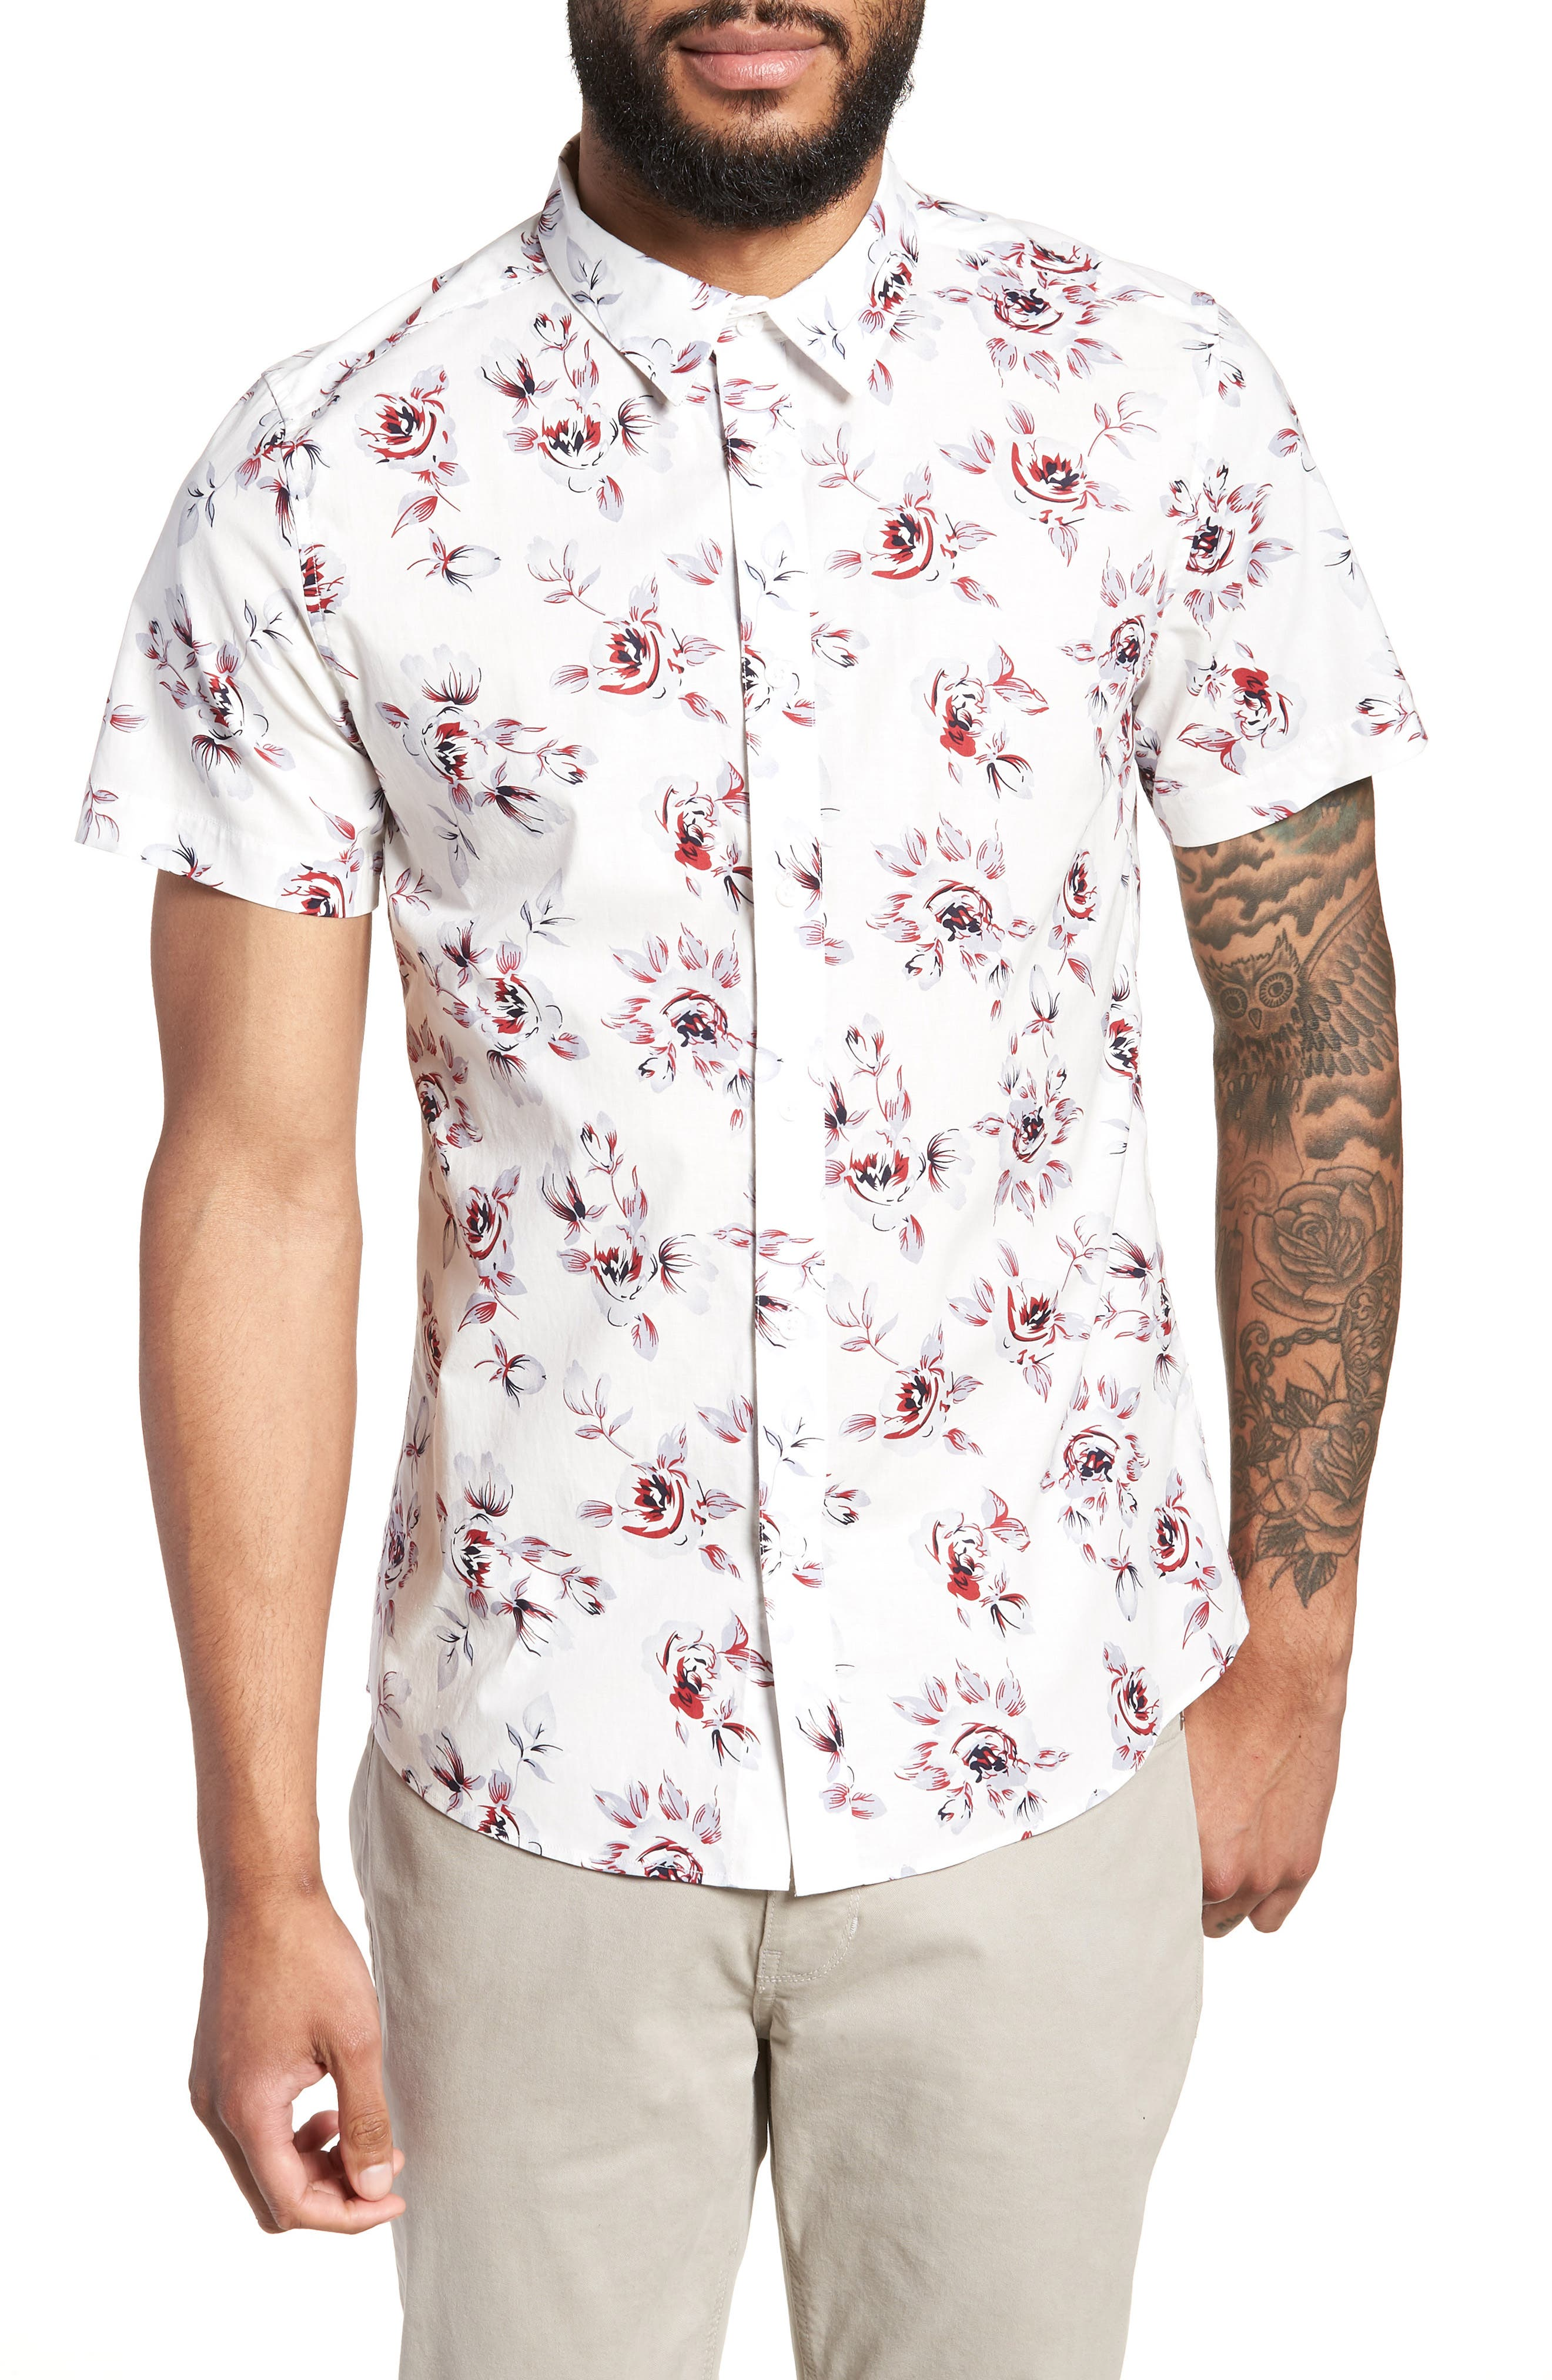 Trim Fit Print Woven Short Sleeve Shirt,                         Main,                         color, White Red Rose